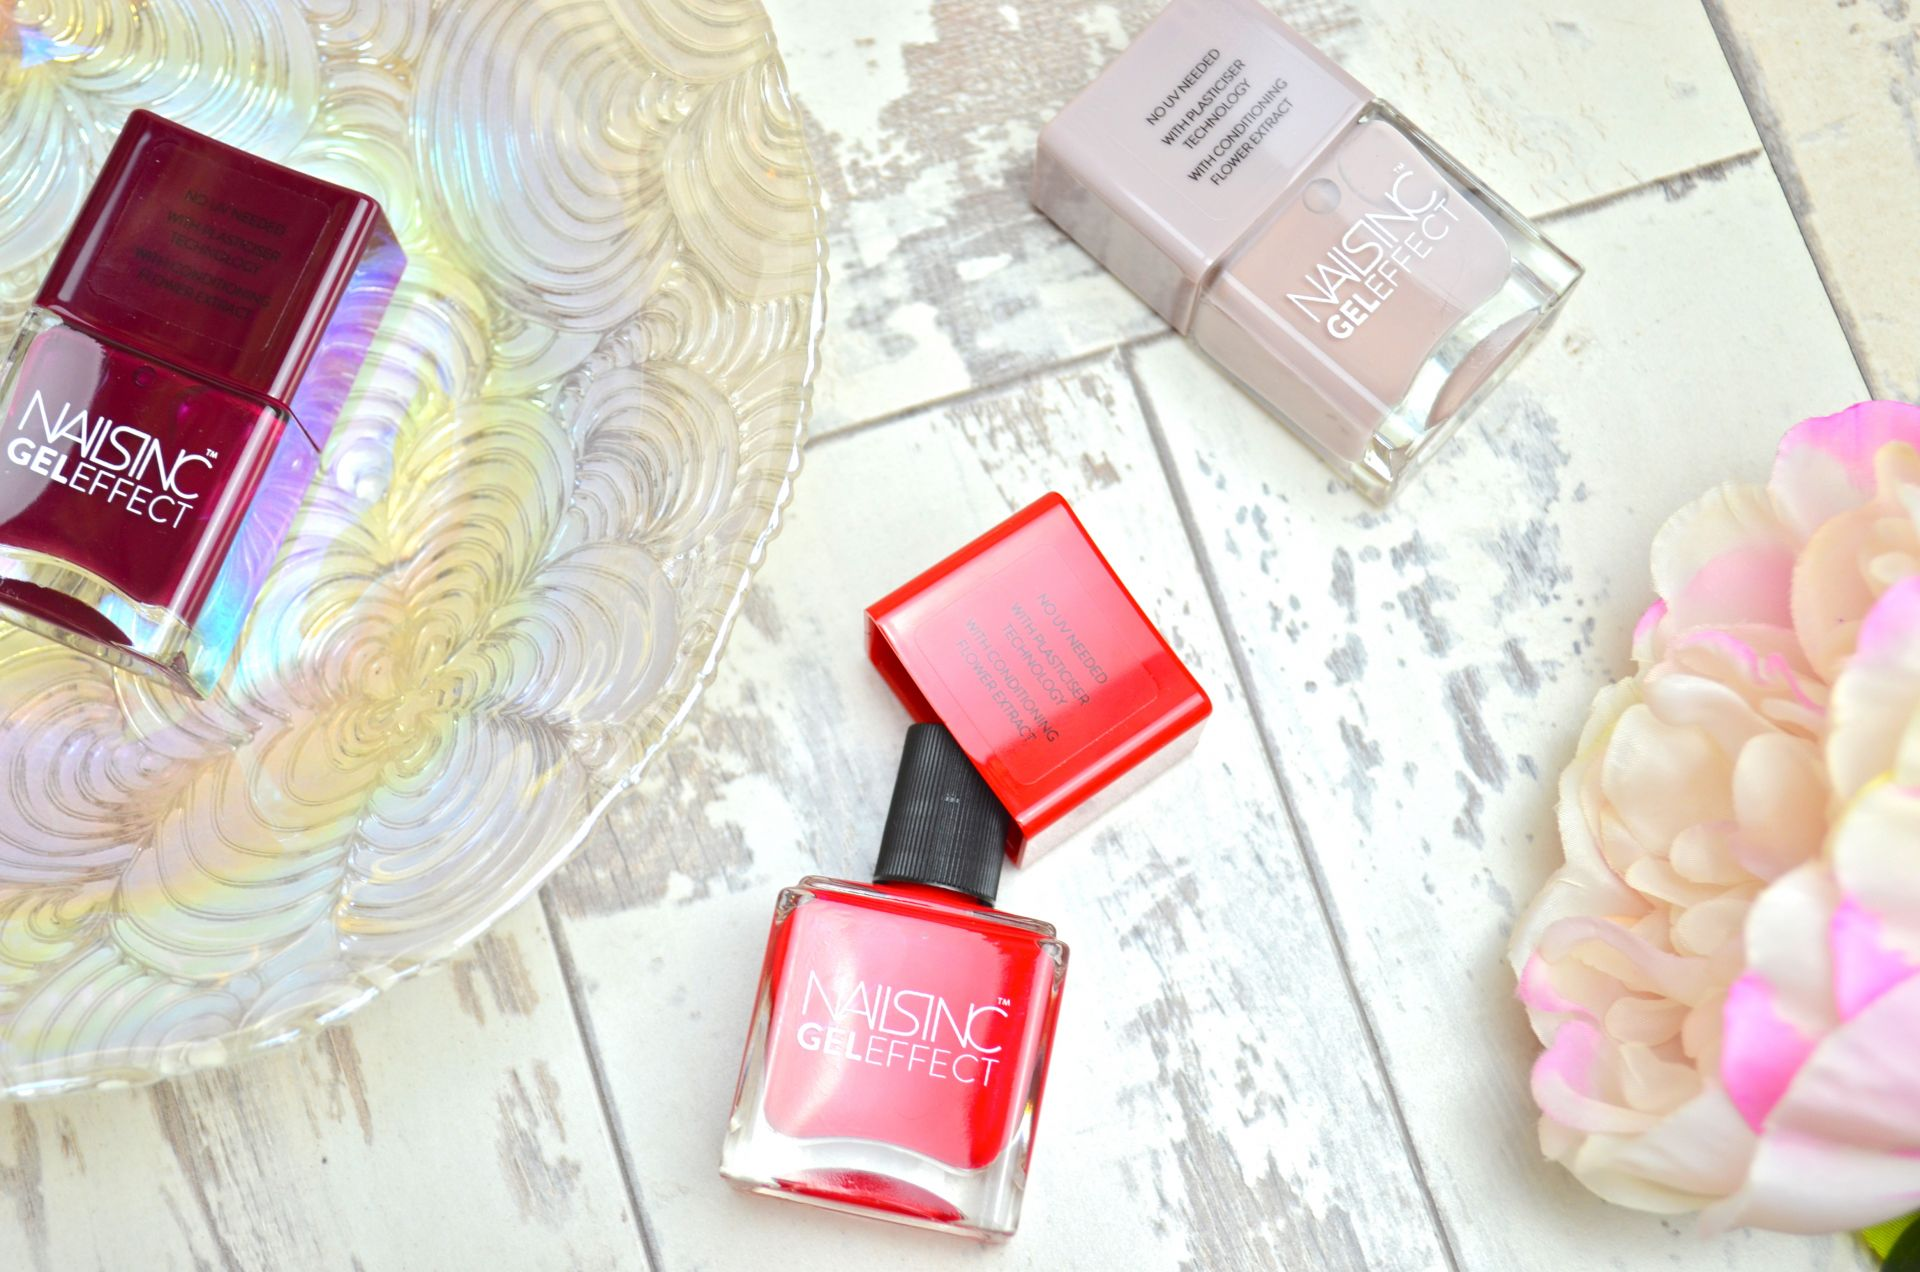 nail-inc-gel-effect-polish-review